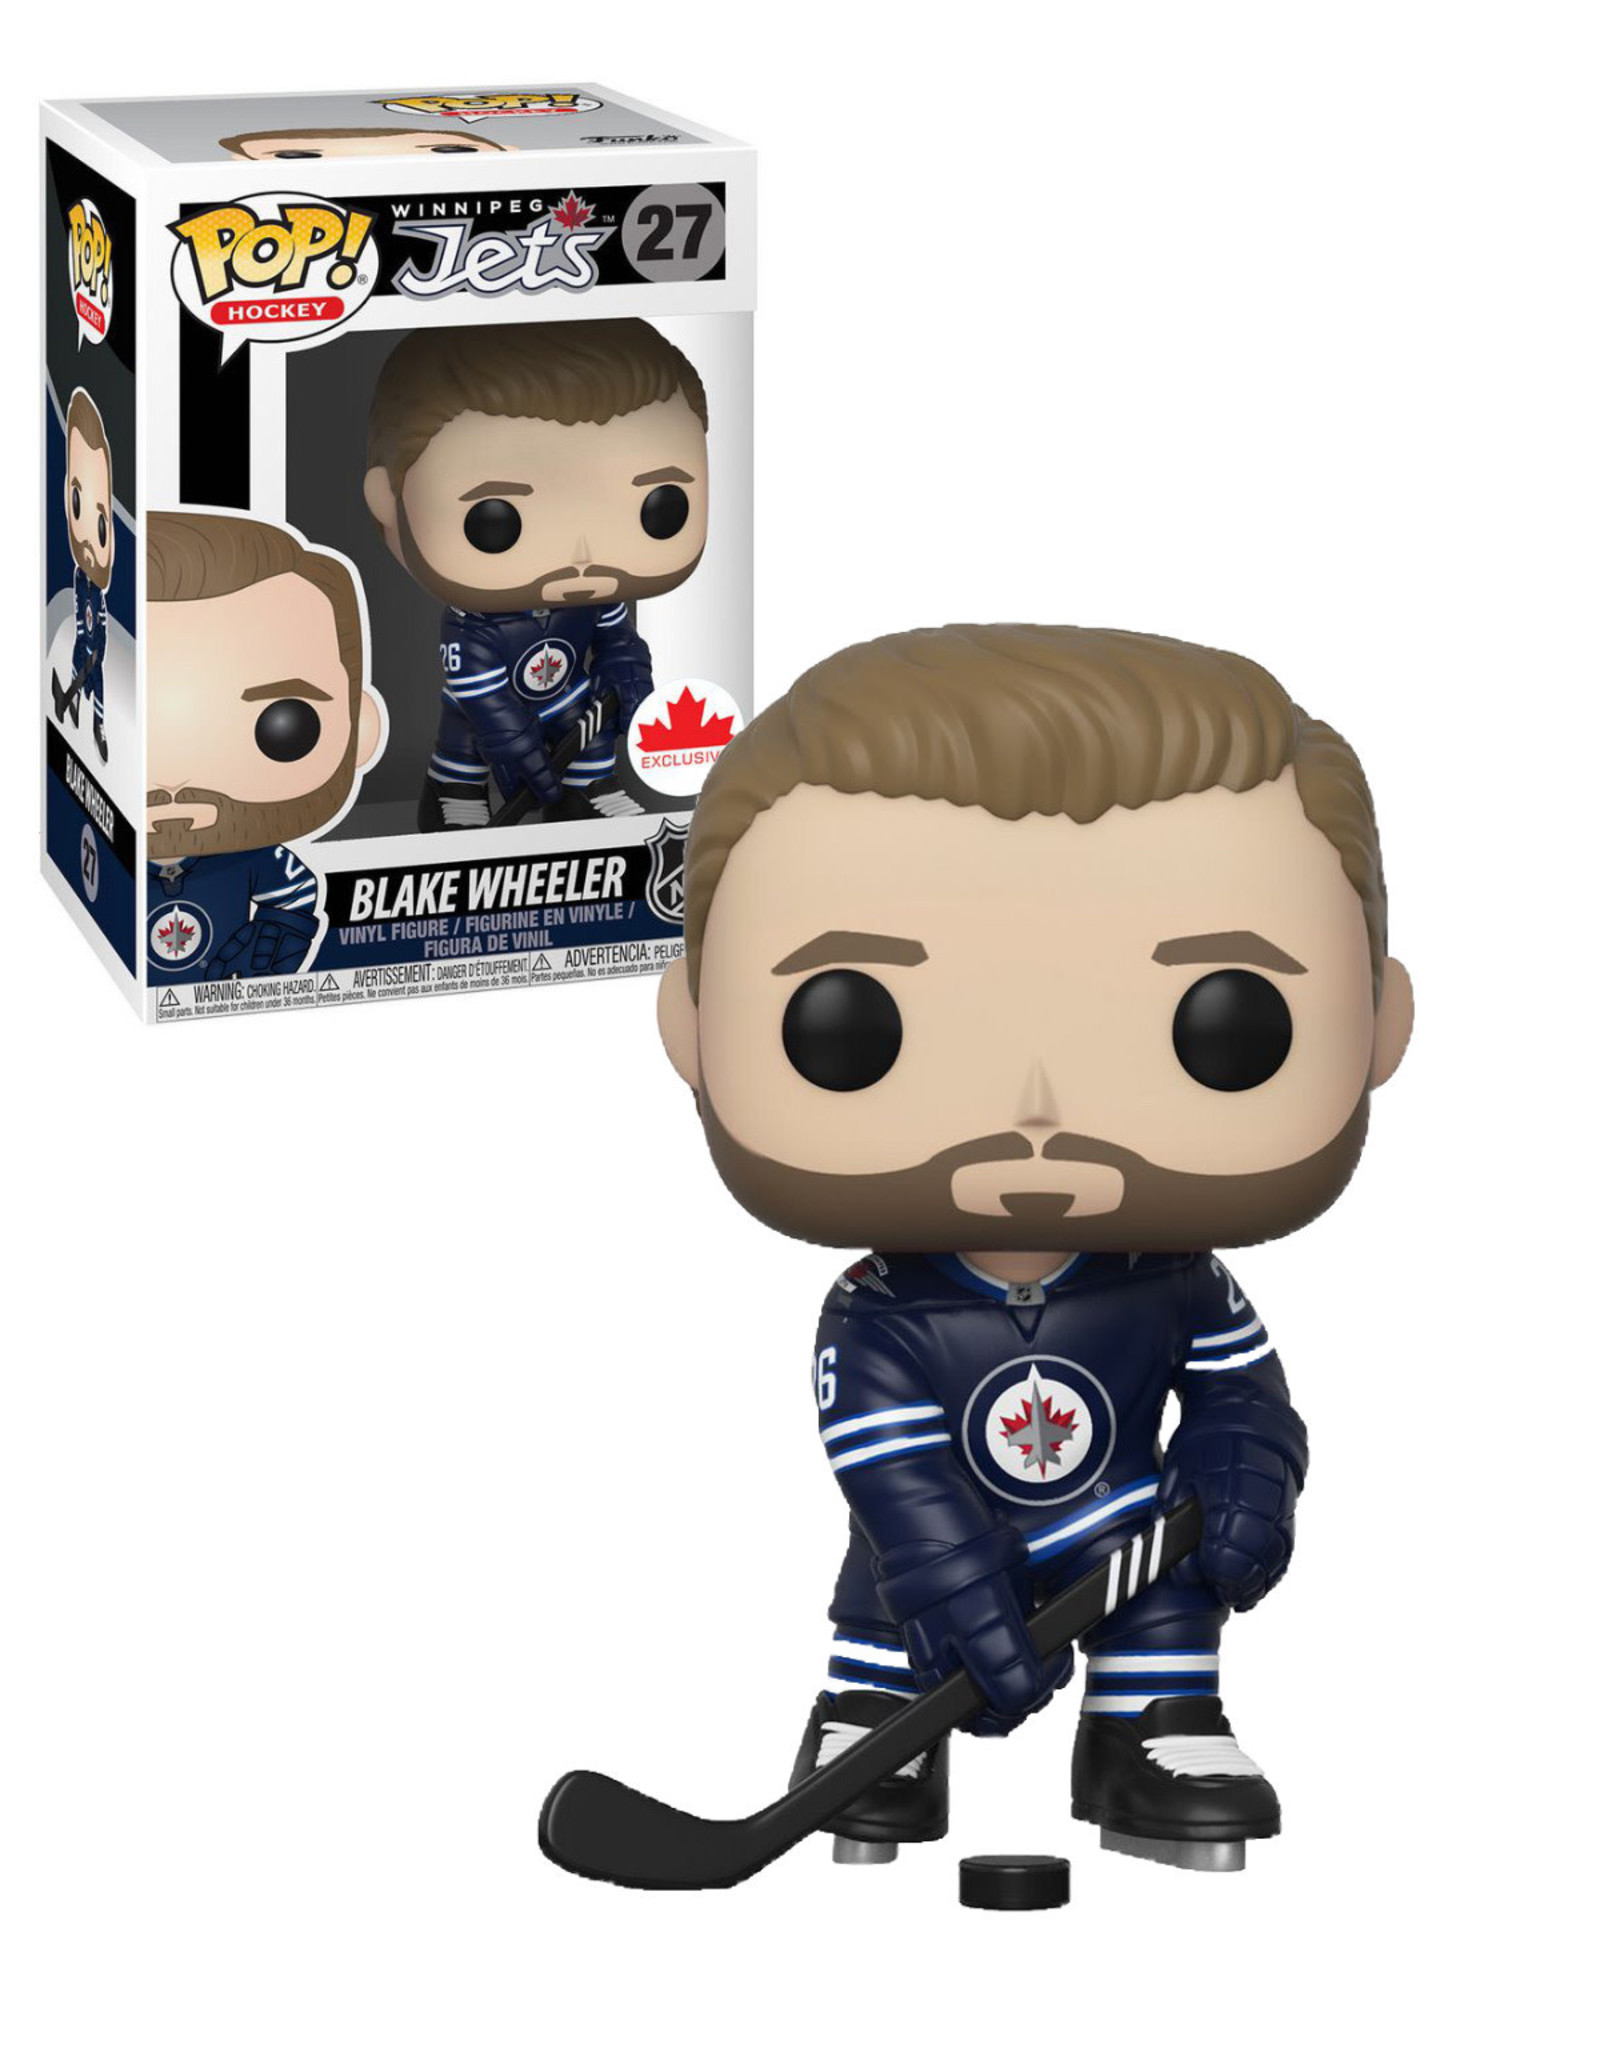 NHL 27 Jets Winnipeg ( Funko Pop ) Blake Wheeler